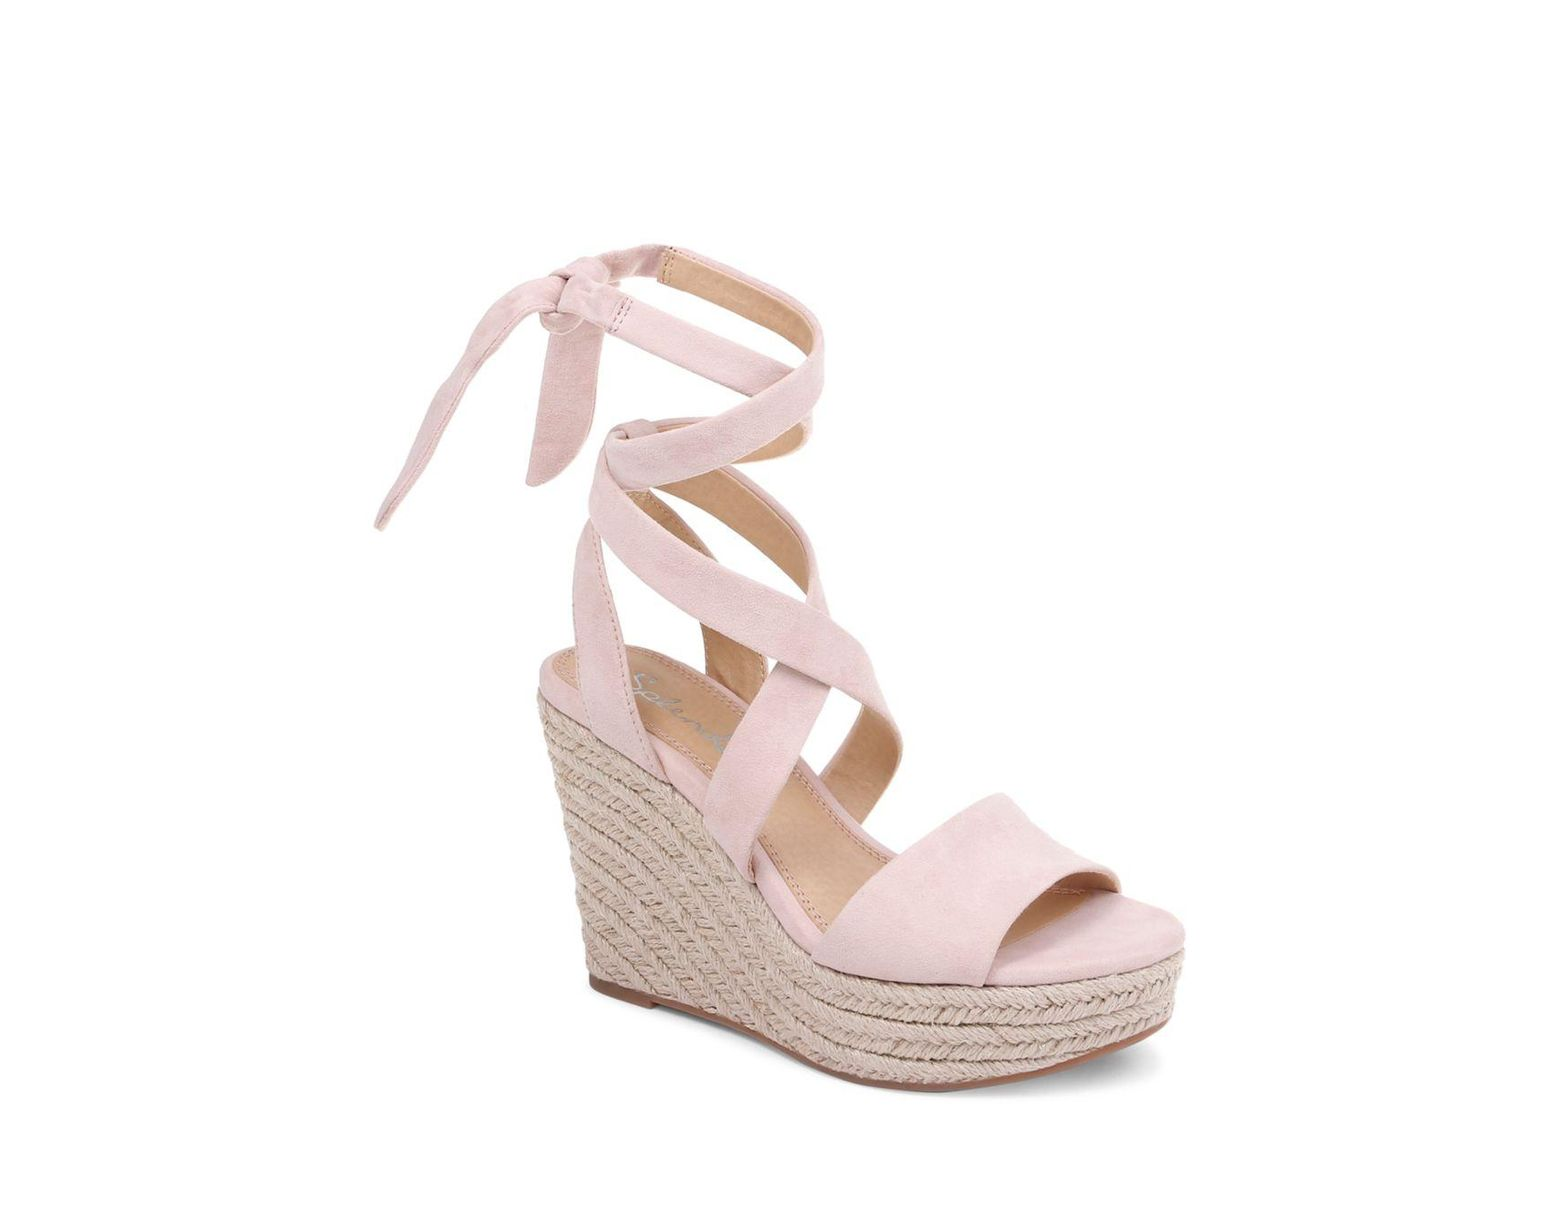 972a65076 Splendid Women's Tessie Ankle - Tie Wedge Sandals in Pink - Lyst